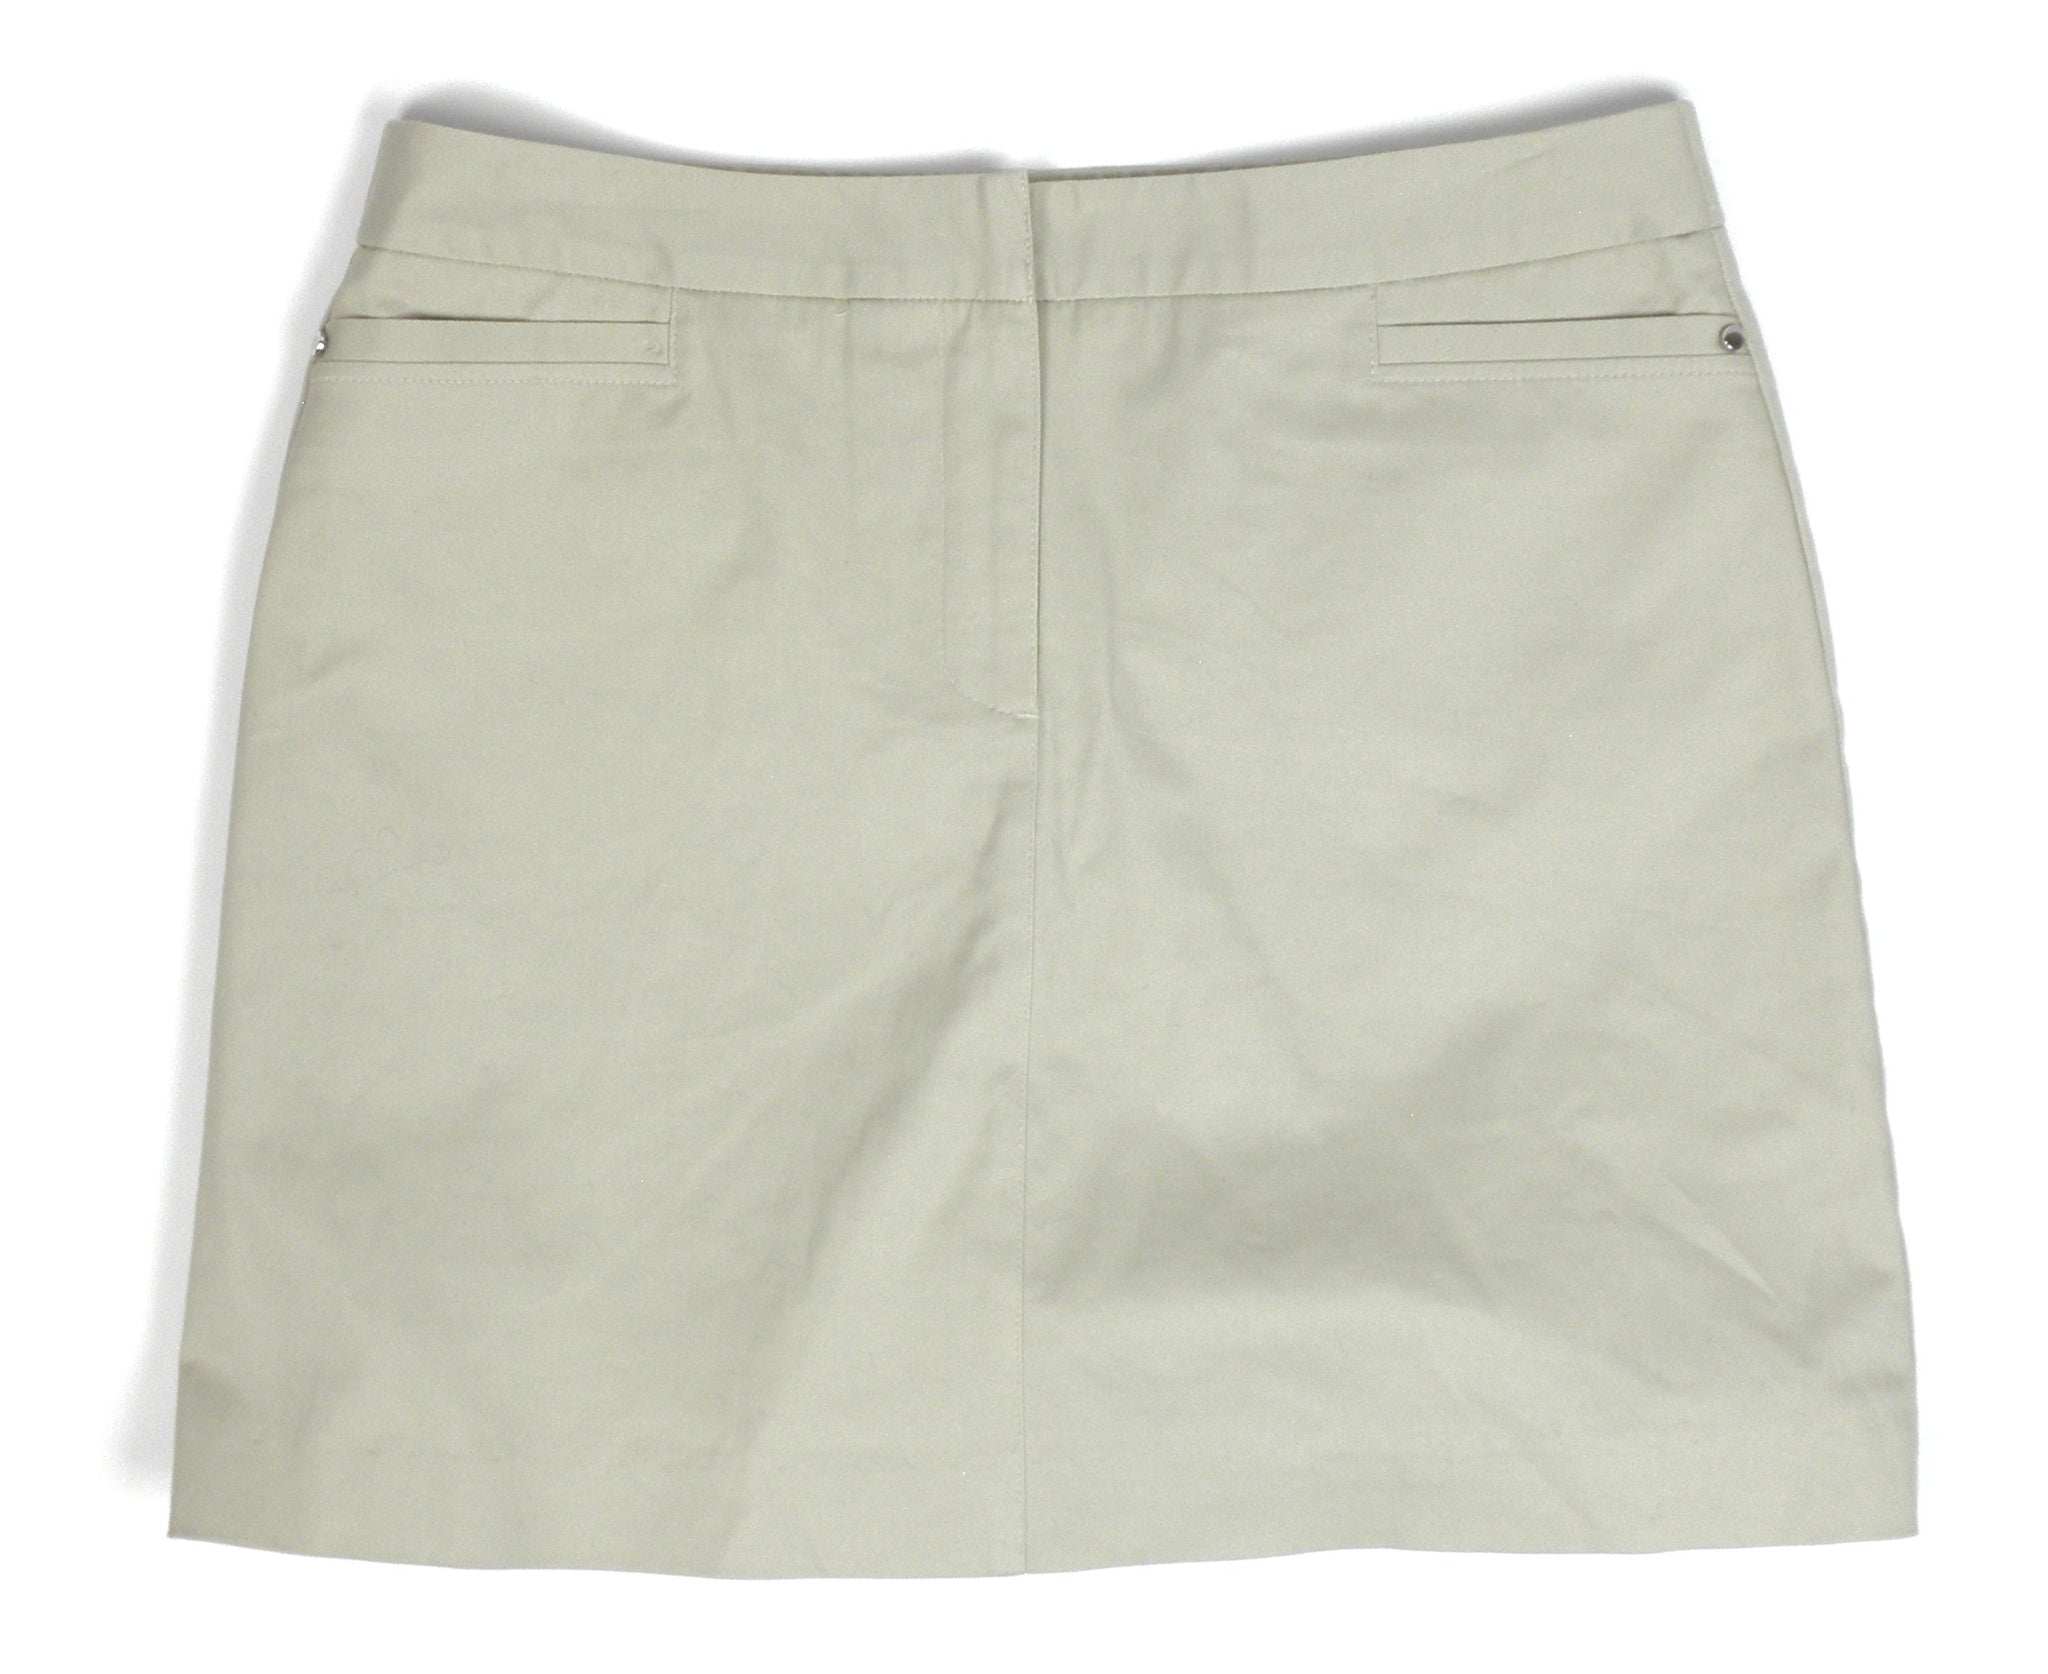 Briggs Khaki Skort - Size 10 - The Fashion Foundation